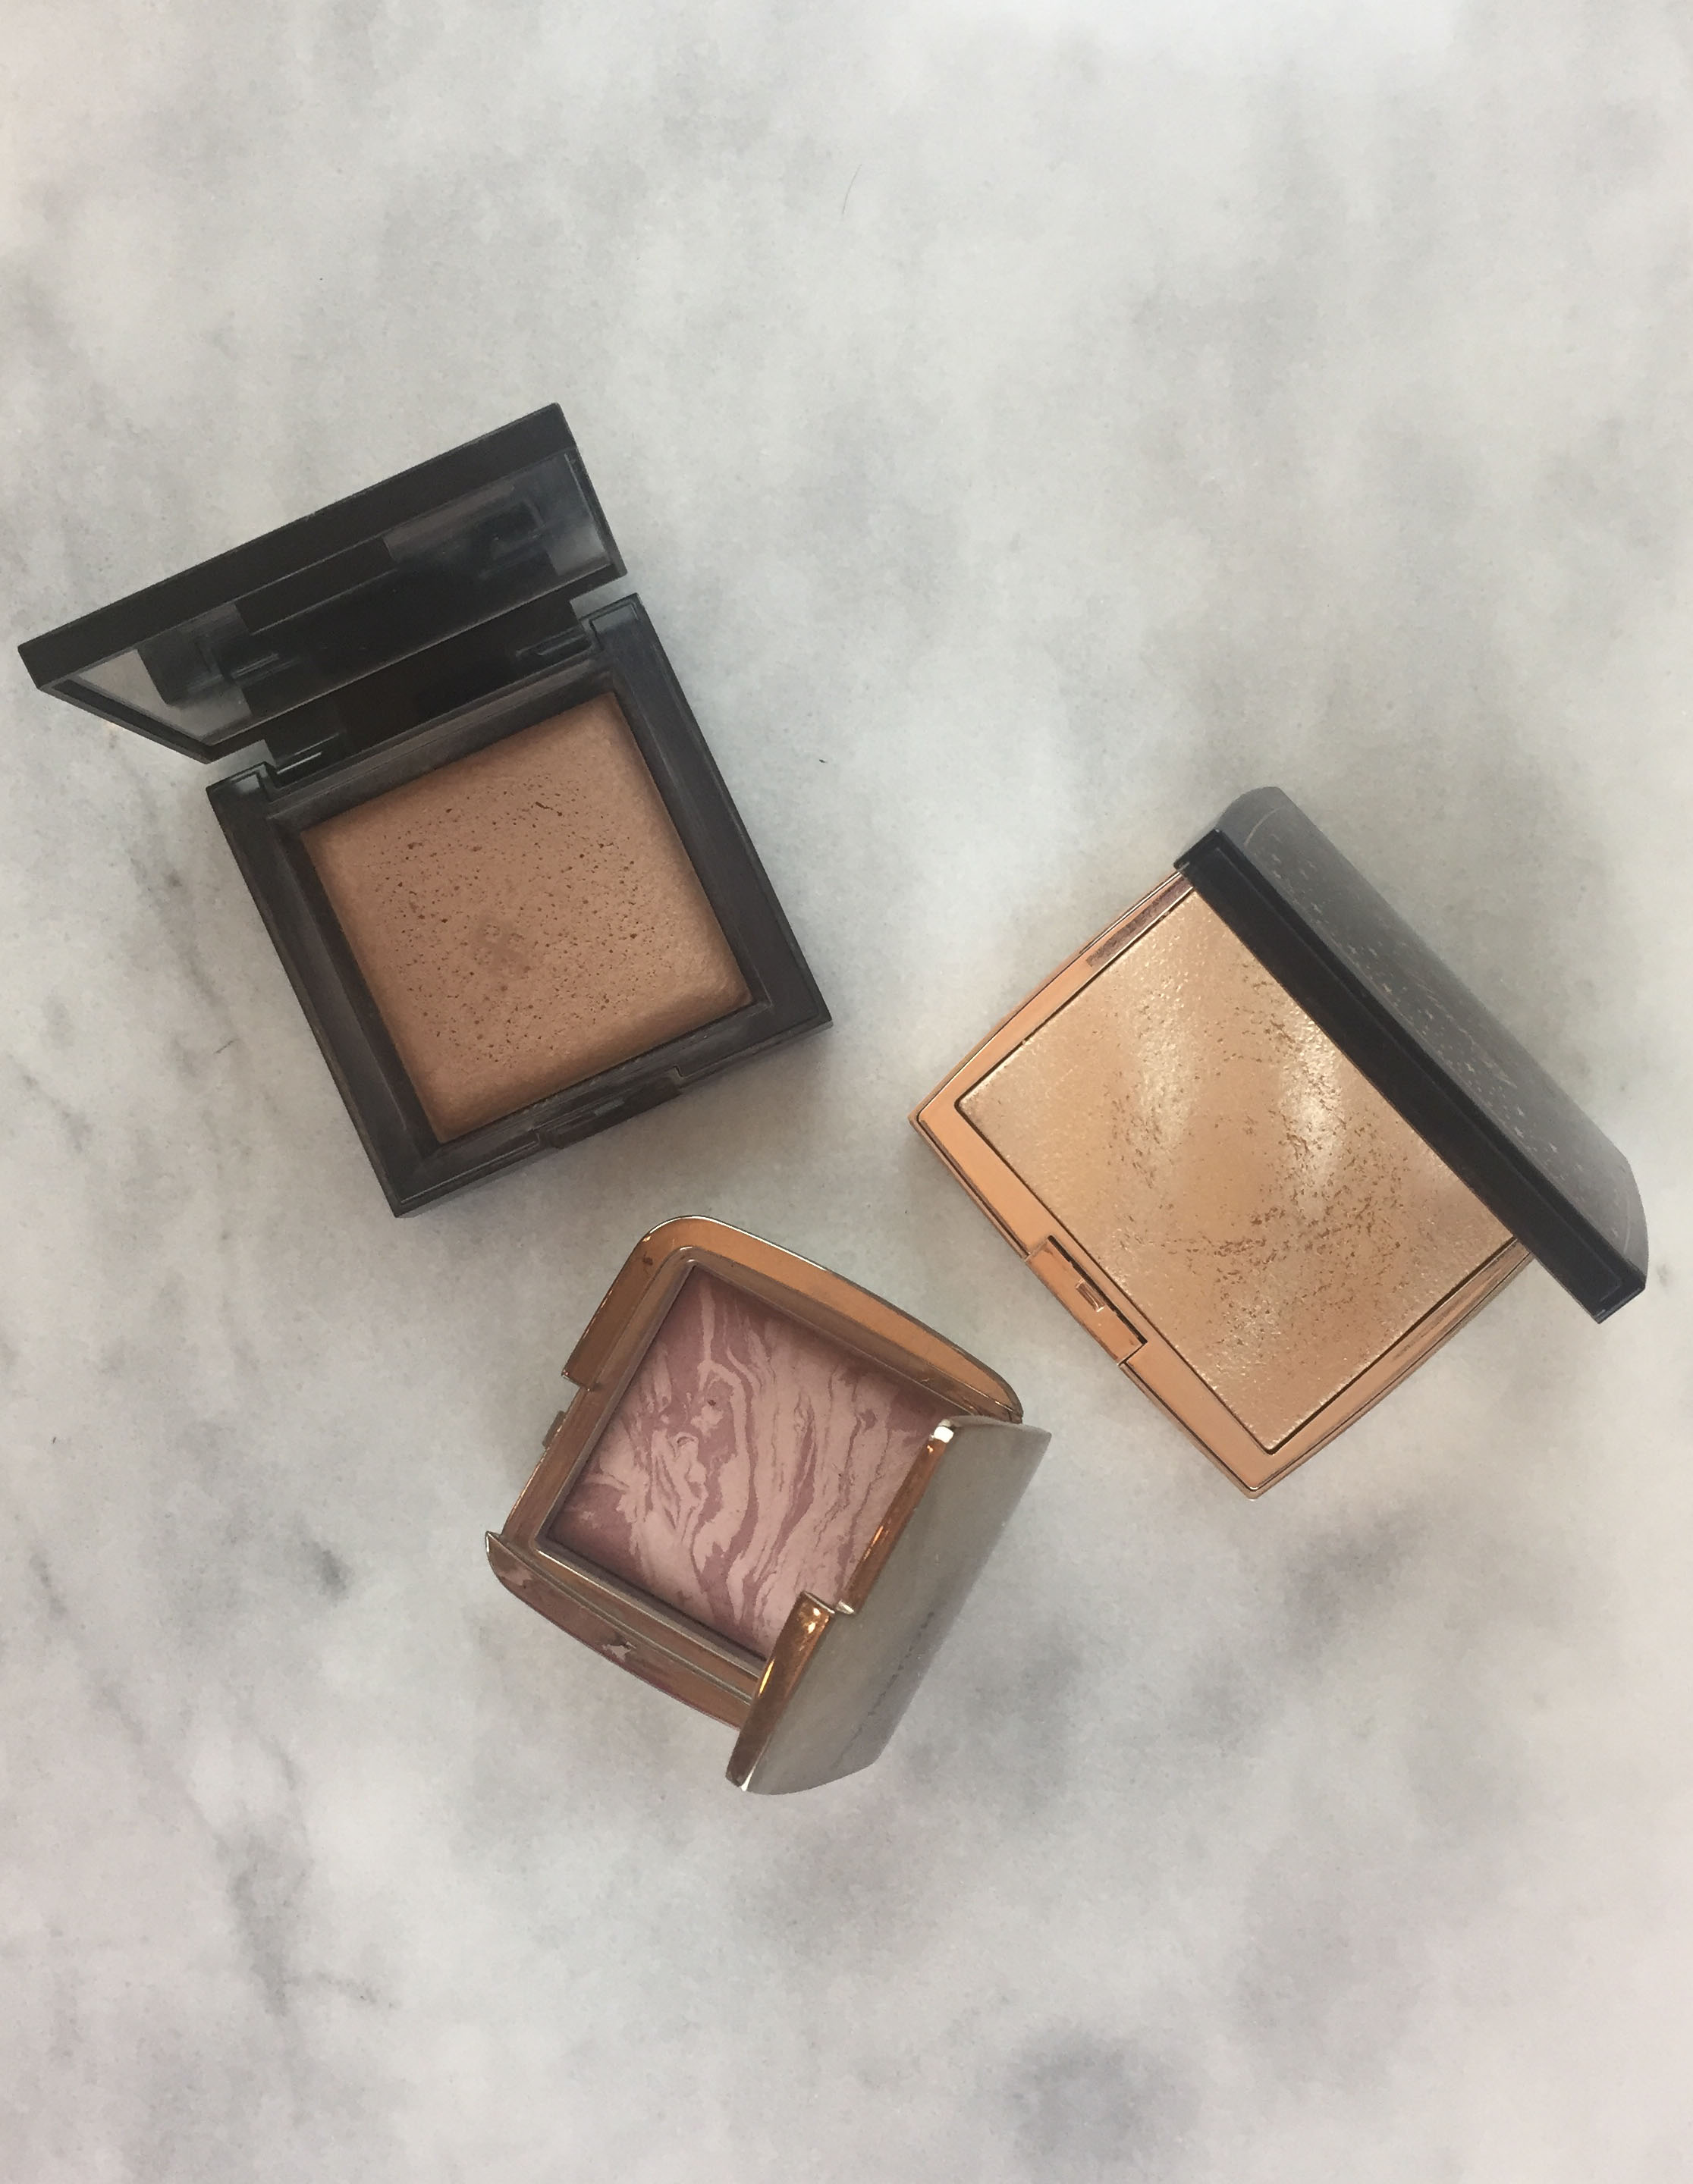 Sephora VIB Sale Recommendations - Cheek Products | Laurel and Iron